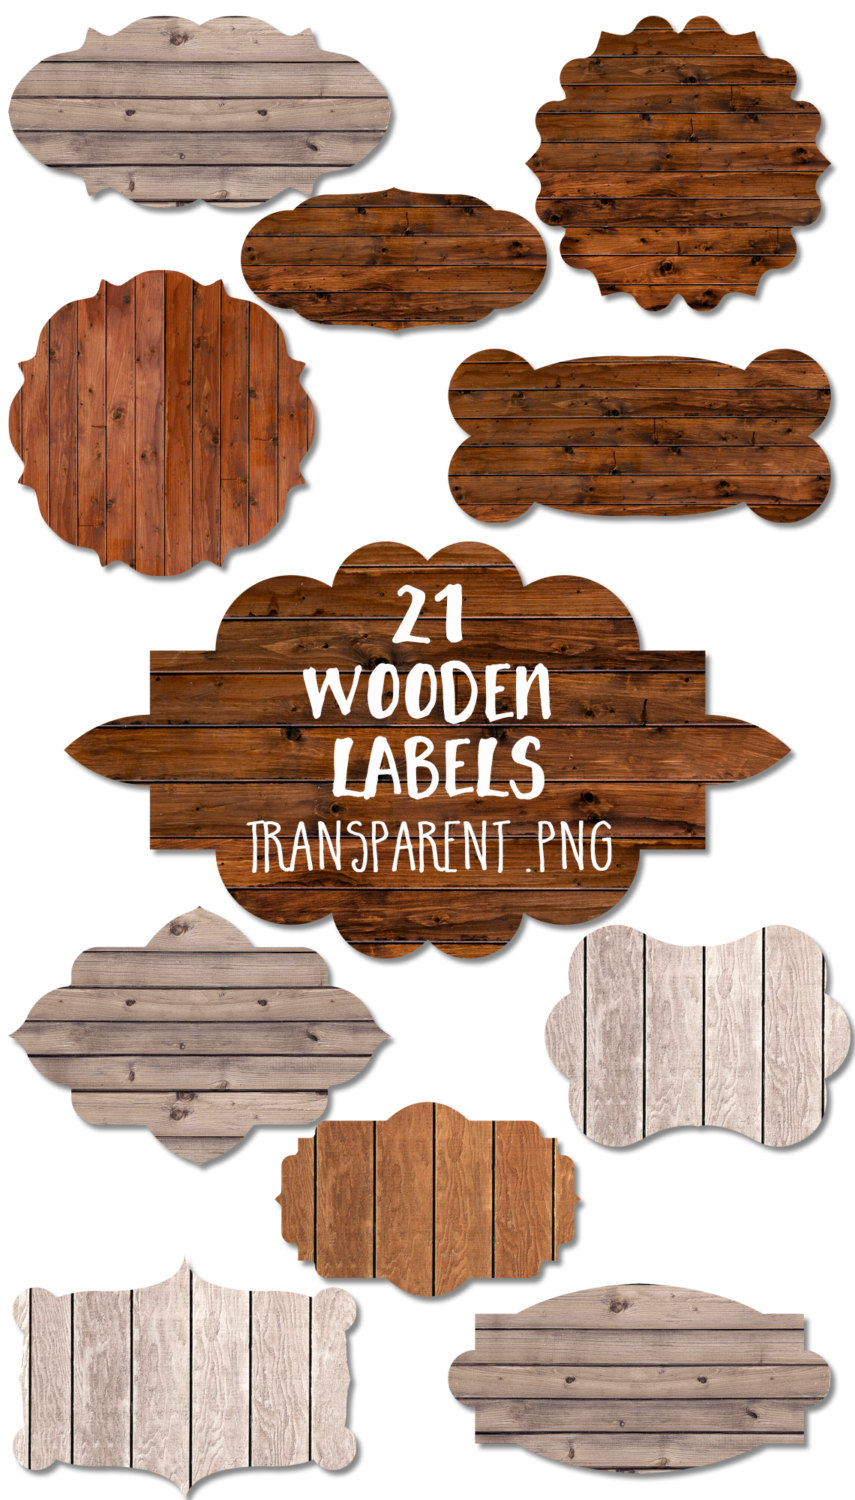 Wood clipart wood plank This is Clip Wood Clipart: